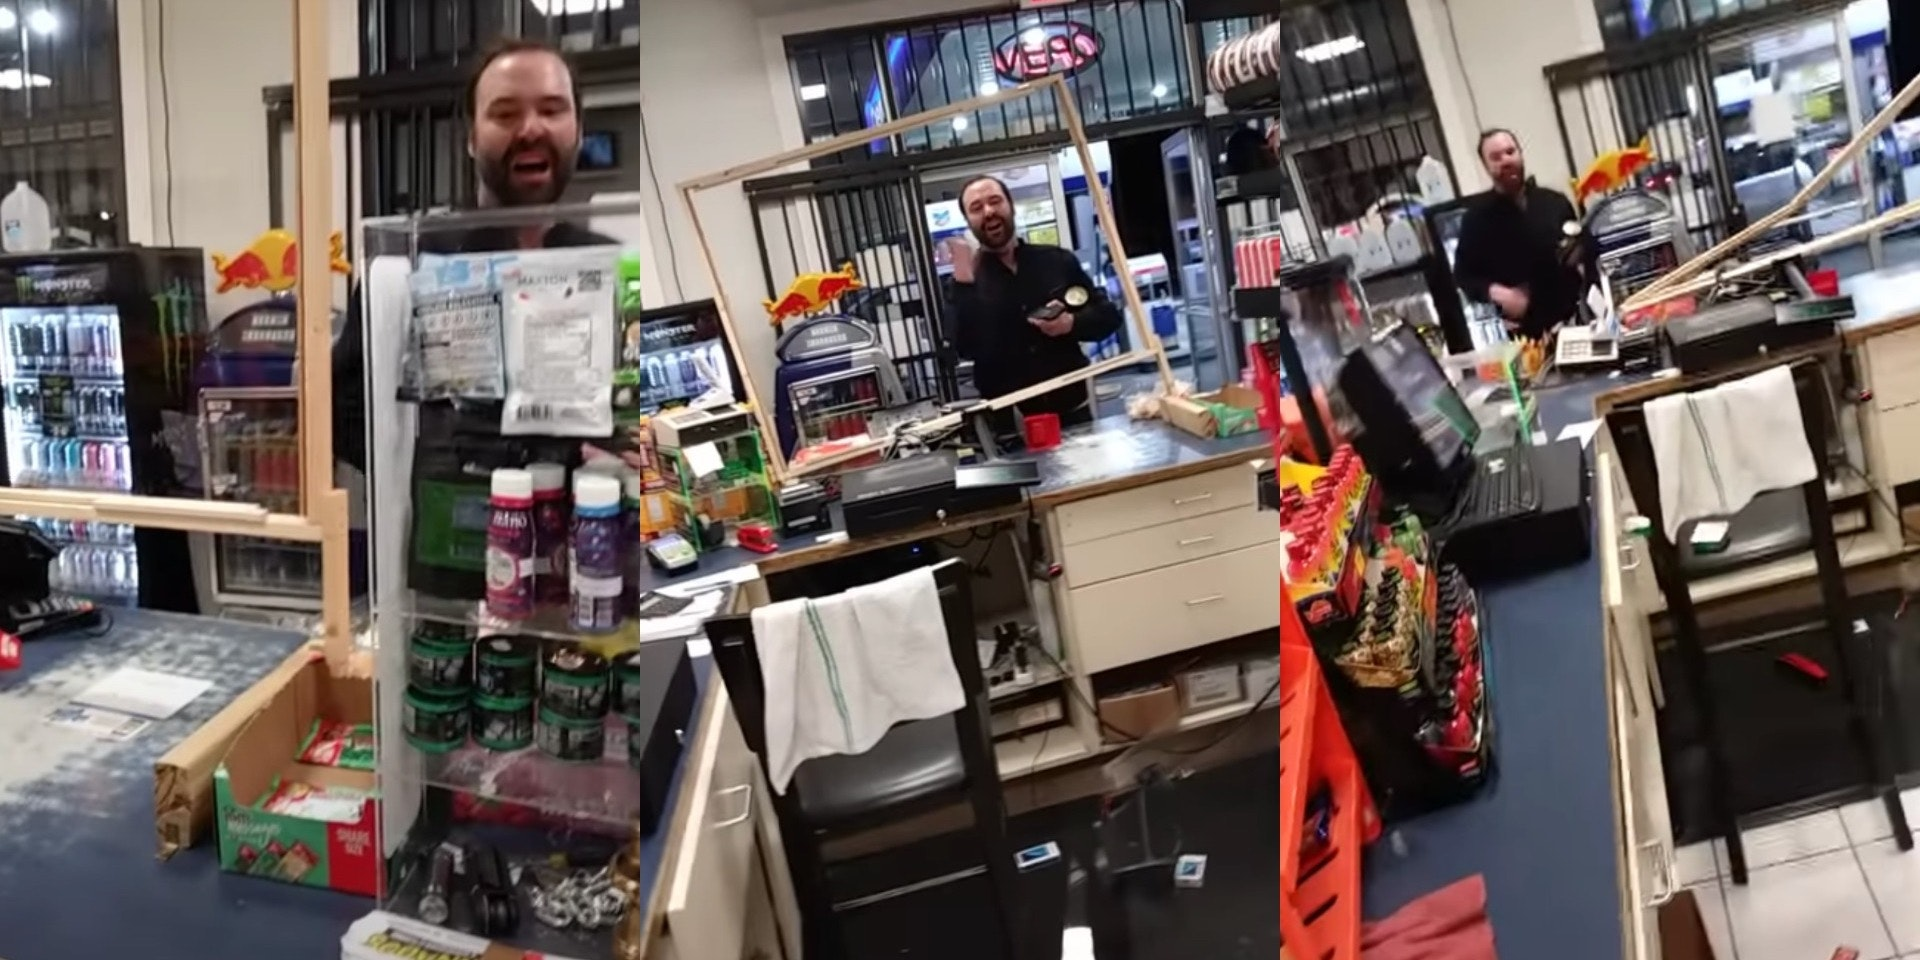 Video shows white man trashing convenience store, harassing employee with anti-Muslim slurs